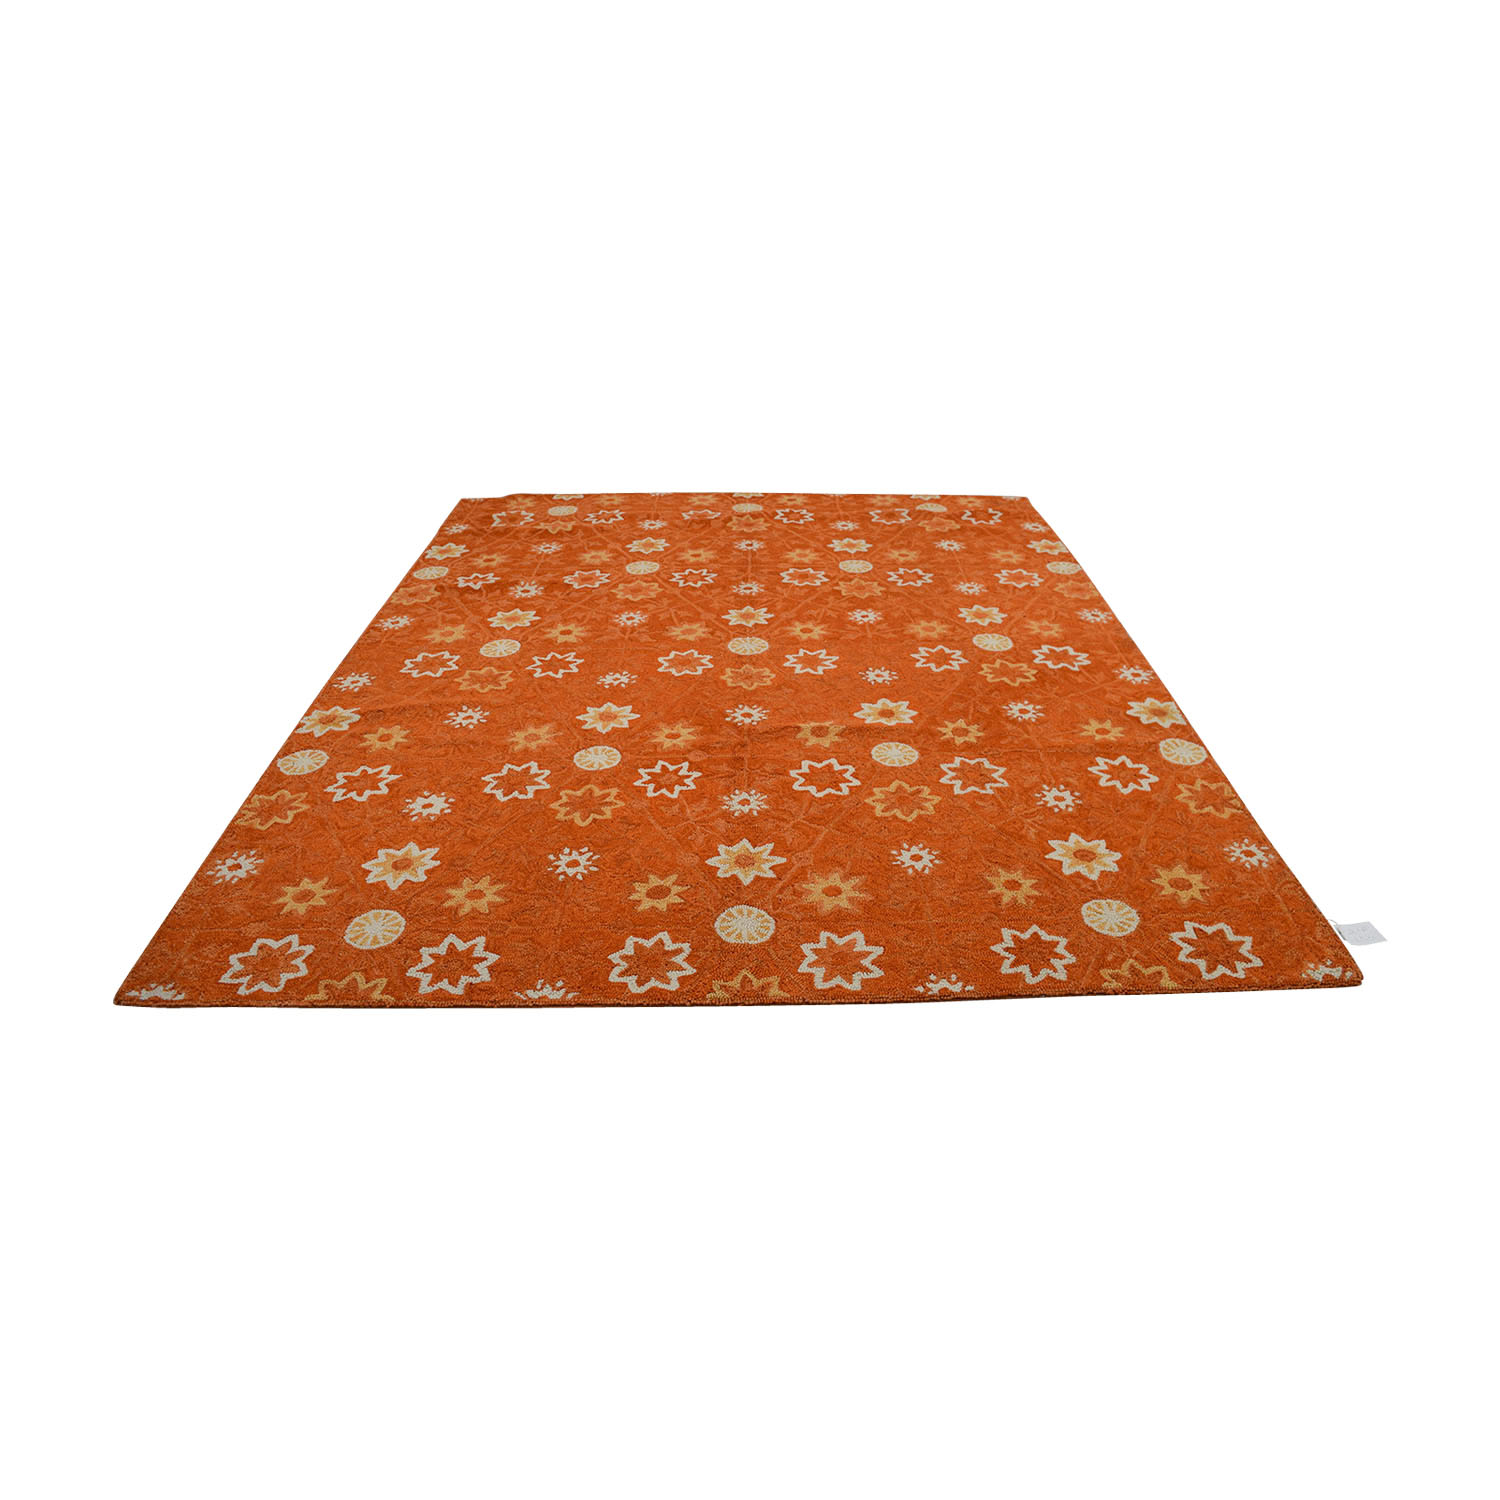 buy Obeetee Orange White Floral Rug Obeetee Decor